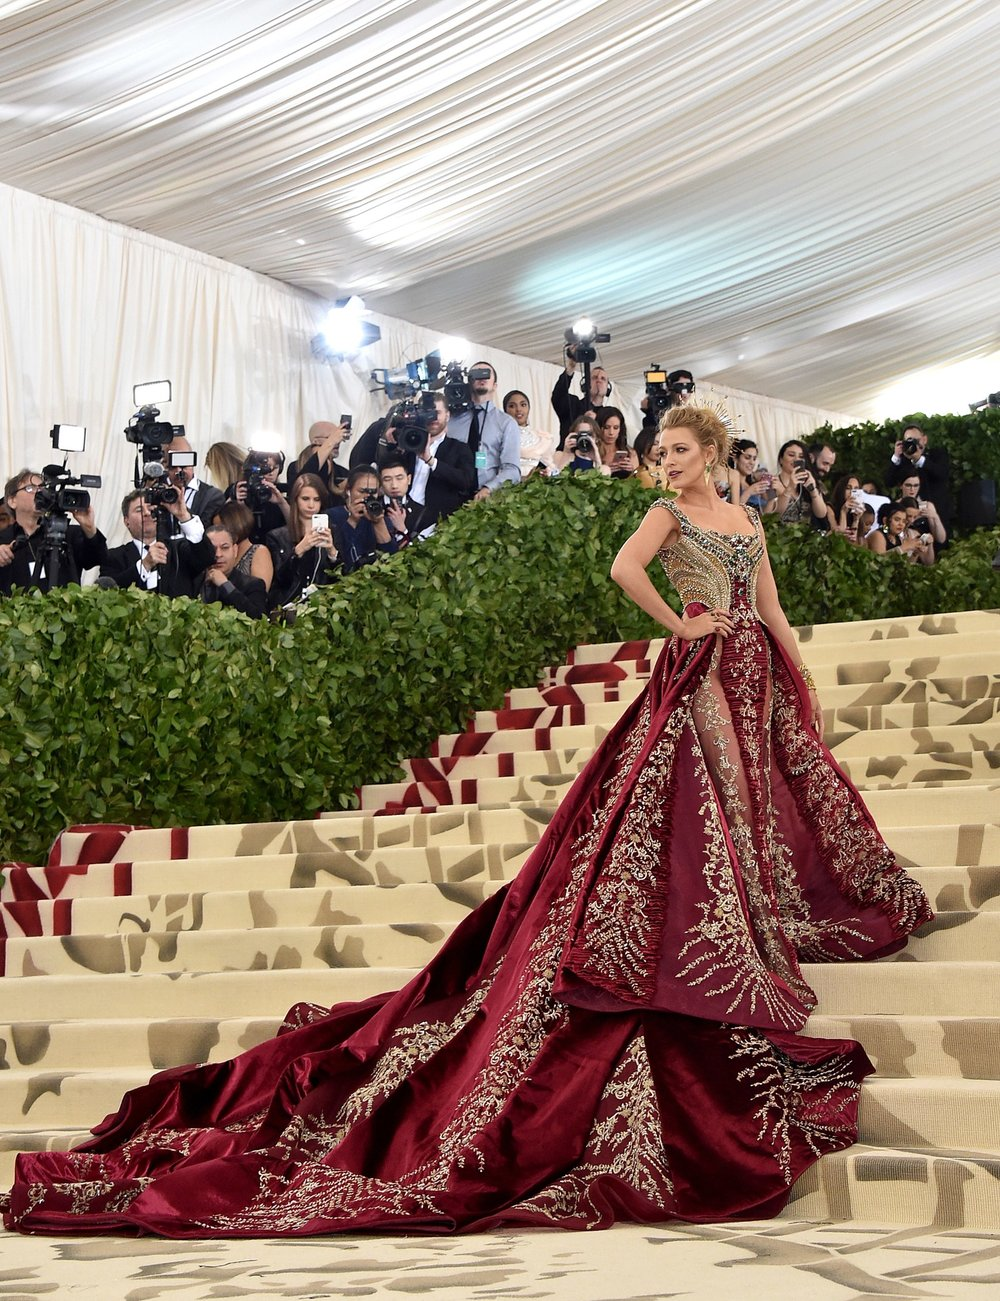 Blake Lively (wearing Versace)    Photographer: John Shearer/Getty Images